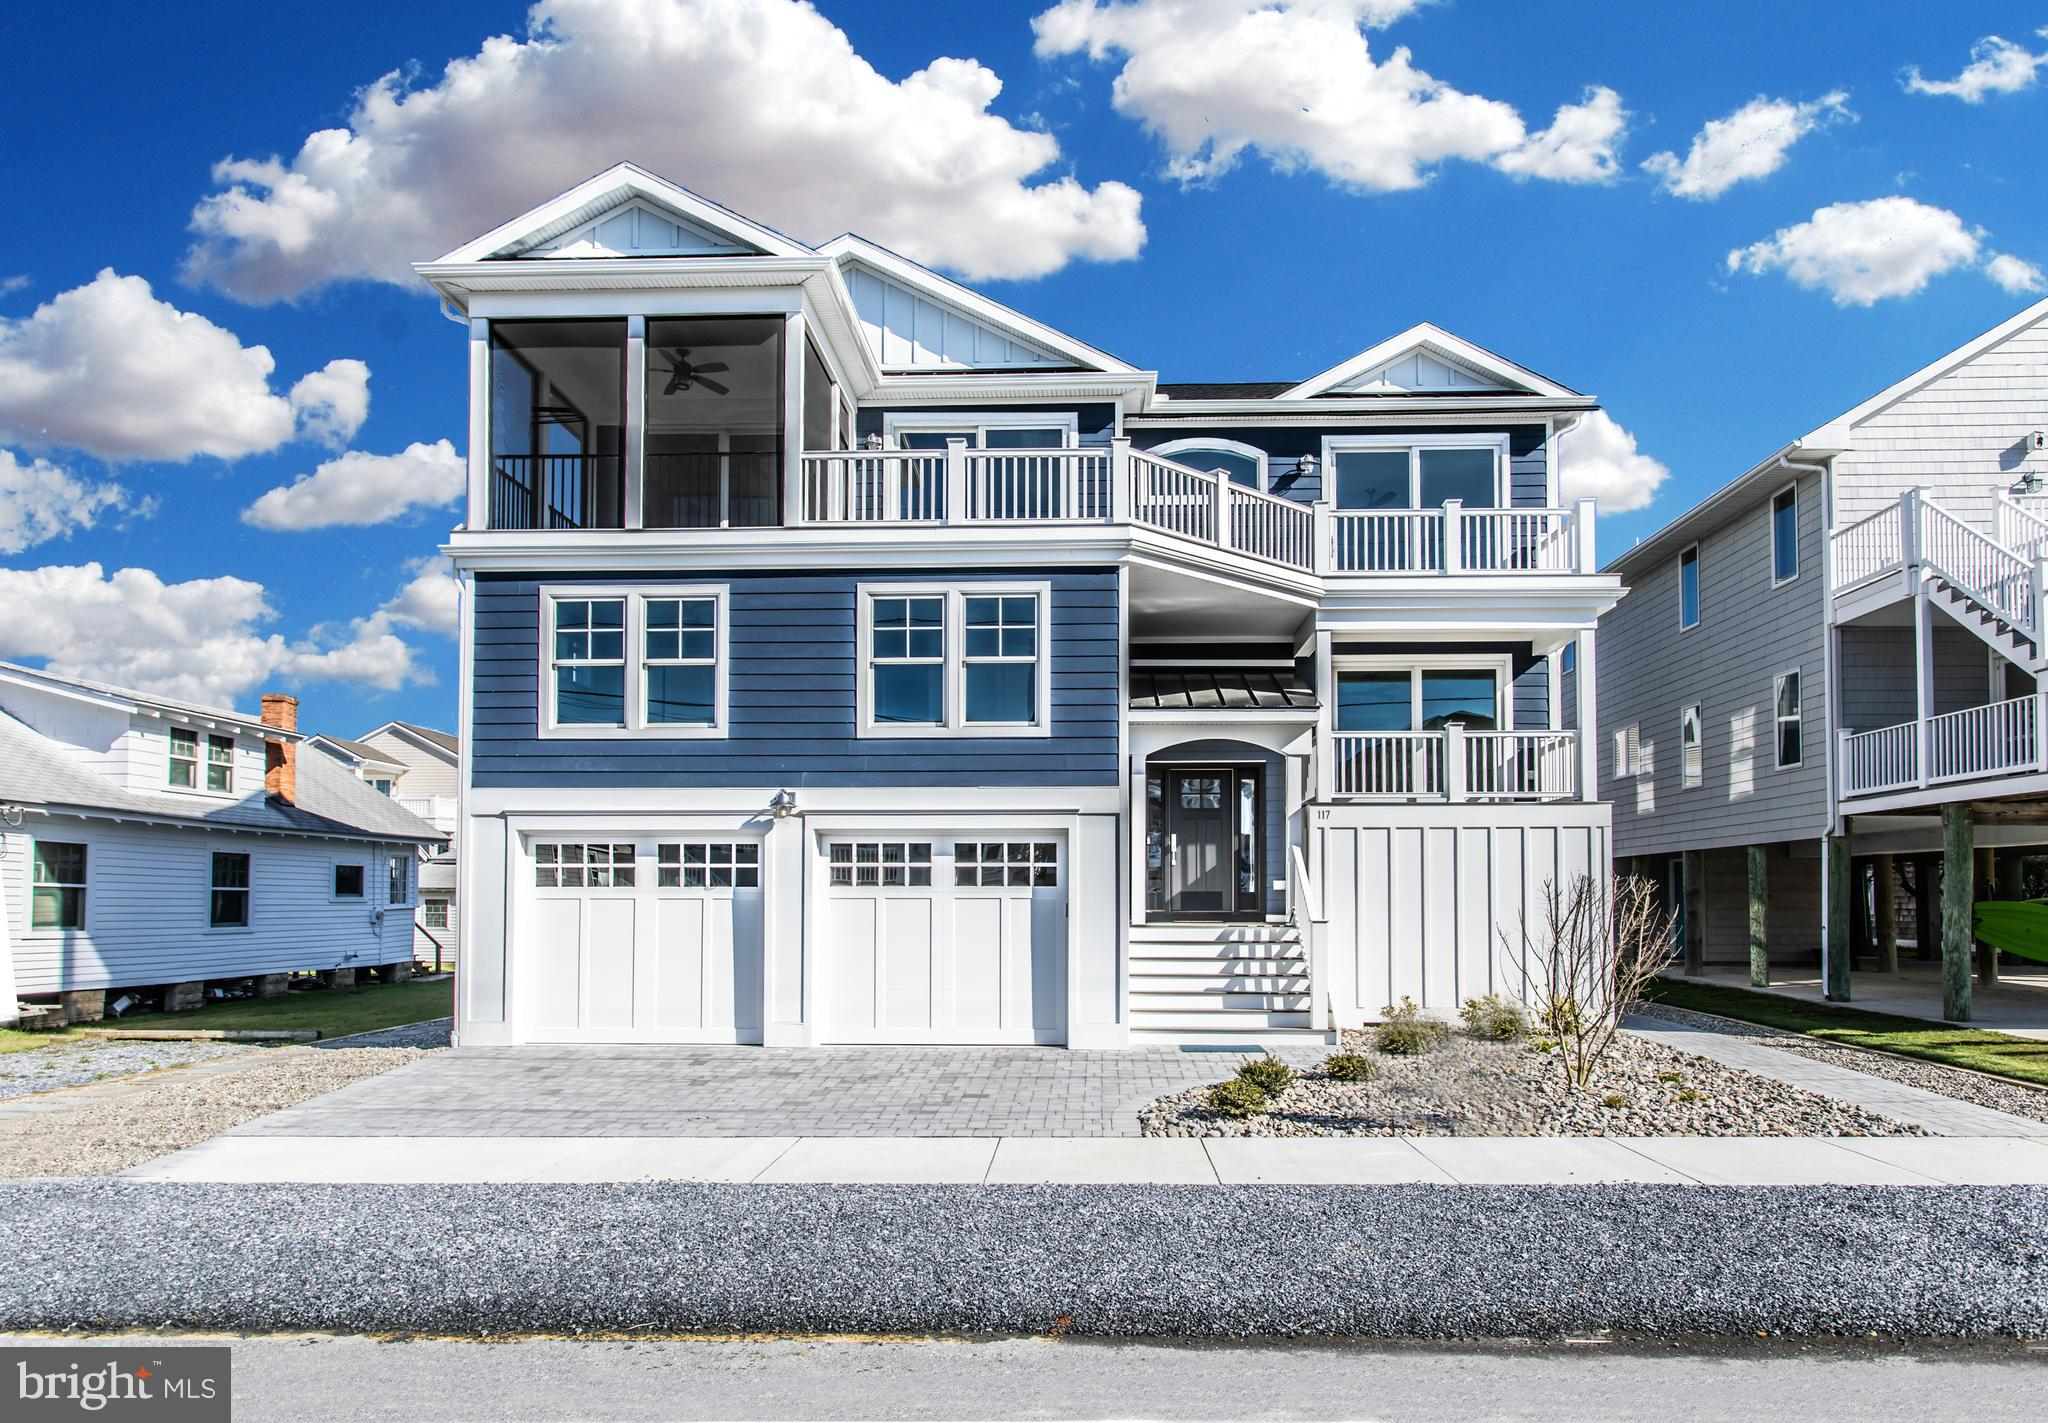 Enjoy the beaches and the charm of Bethany Beach with this brand new five-bedroom, four- and one-half bath home. This home boasts a reverse floor plan with all your main living spaces on the top floor to take advantage of views. The elevator in the house will make it easy to get from the entry-level to the bedroom level and the main living space. The home also features cathedral ceilings, a gourmet kitchen boasting a waterfall granite island and the dining area opens to the main living space. Other highlights include a screened porch, multiple decks, two master bedroom suites, custom tile, ship lap, beverage centers, gas fireplace, hardwood floors, central vac, security system, plenty of storage, outdoor shower, paver driveway and walks and many more extras. It has plenty of room for all your guests to visit as well as excellent rental income possibilities. Because you are steps away from the beach and the town, you can enjoy both the beach and the town of Bethany without ever having to move your car. This house is a MUST see for your home search.